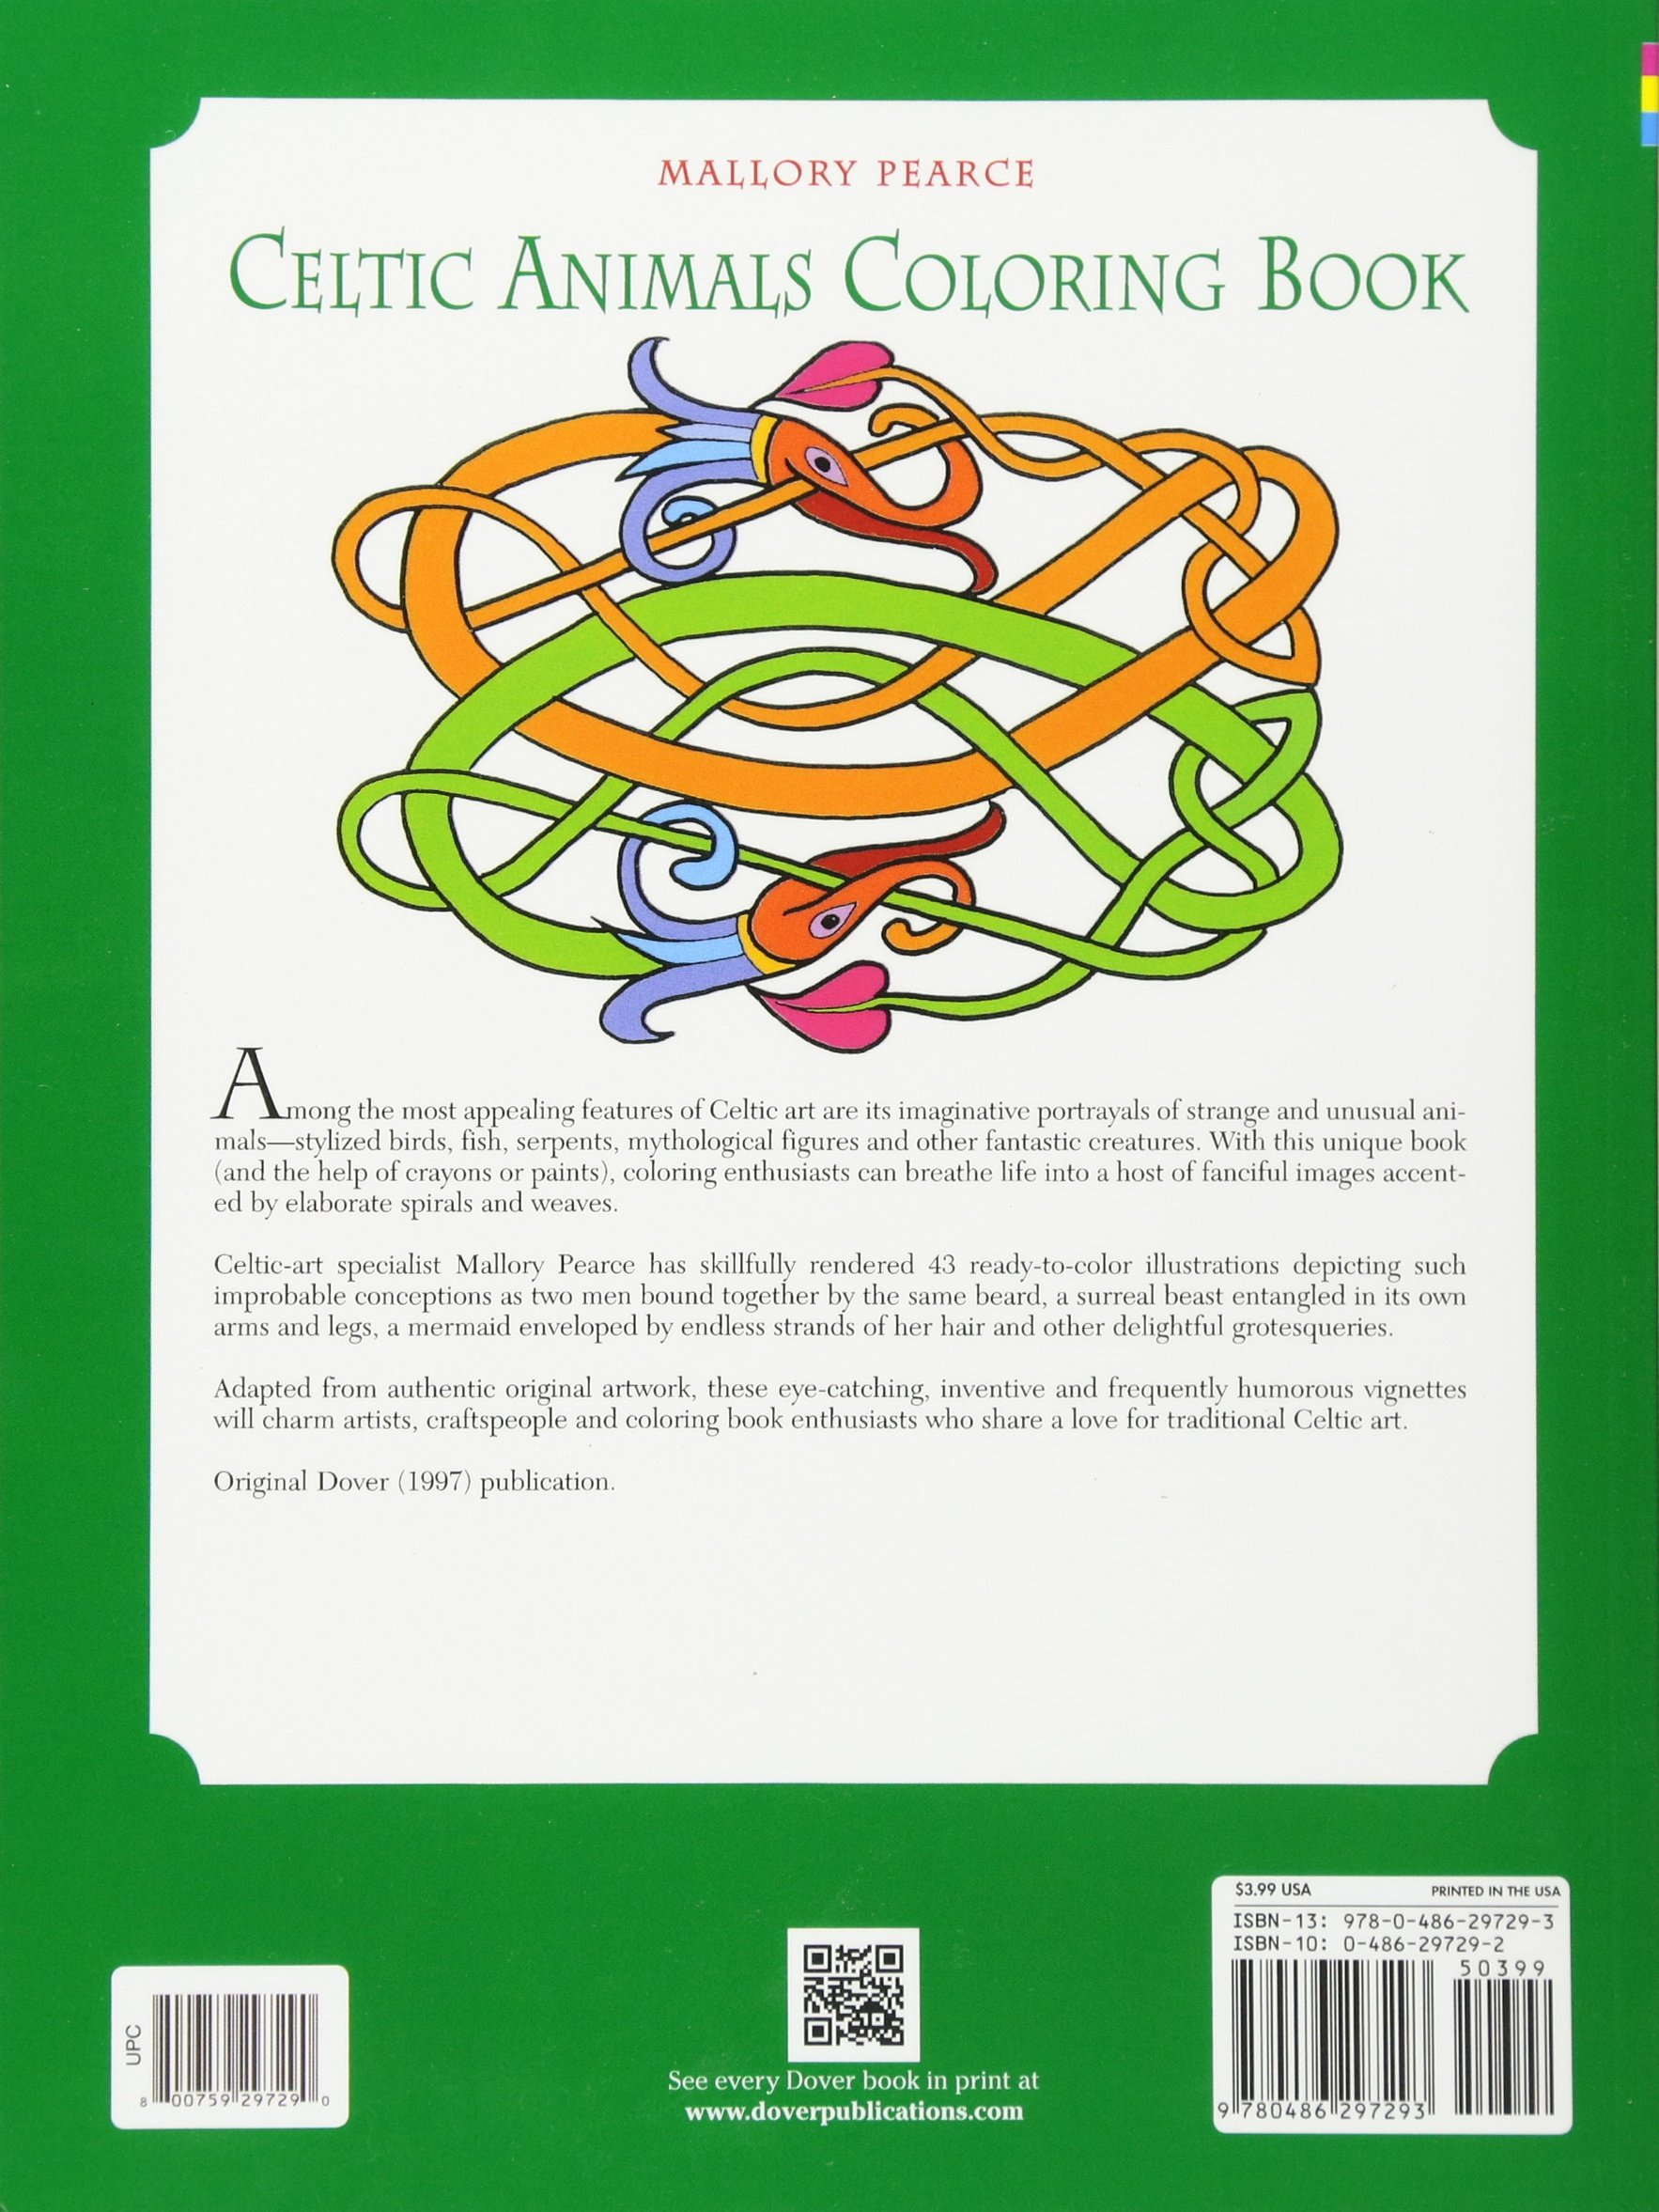 Celtic Animals Coloring Book Mallory Pearce 9780486297293 Books